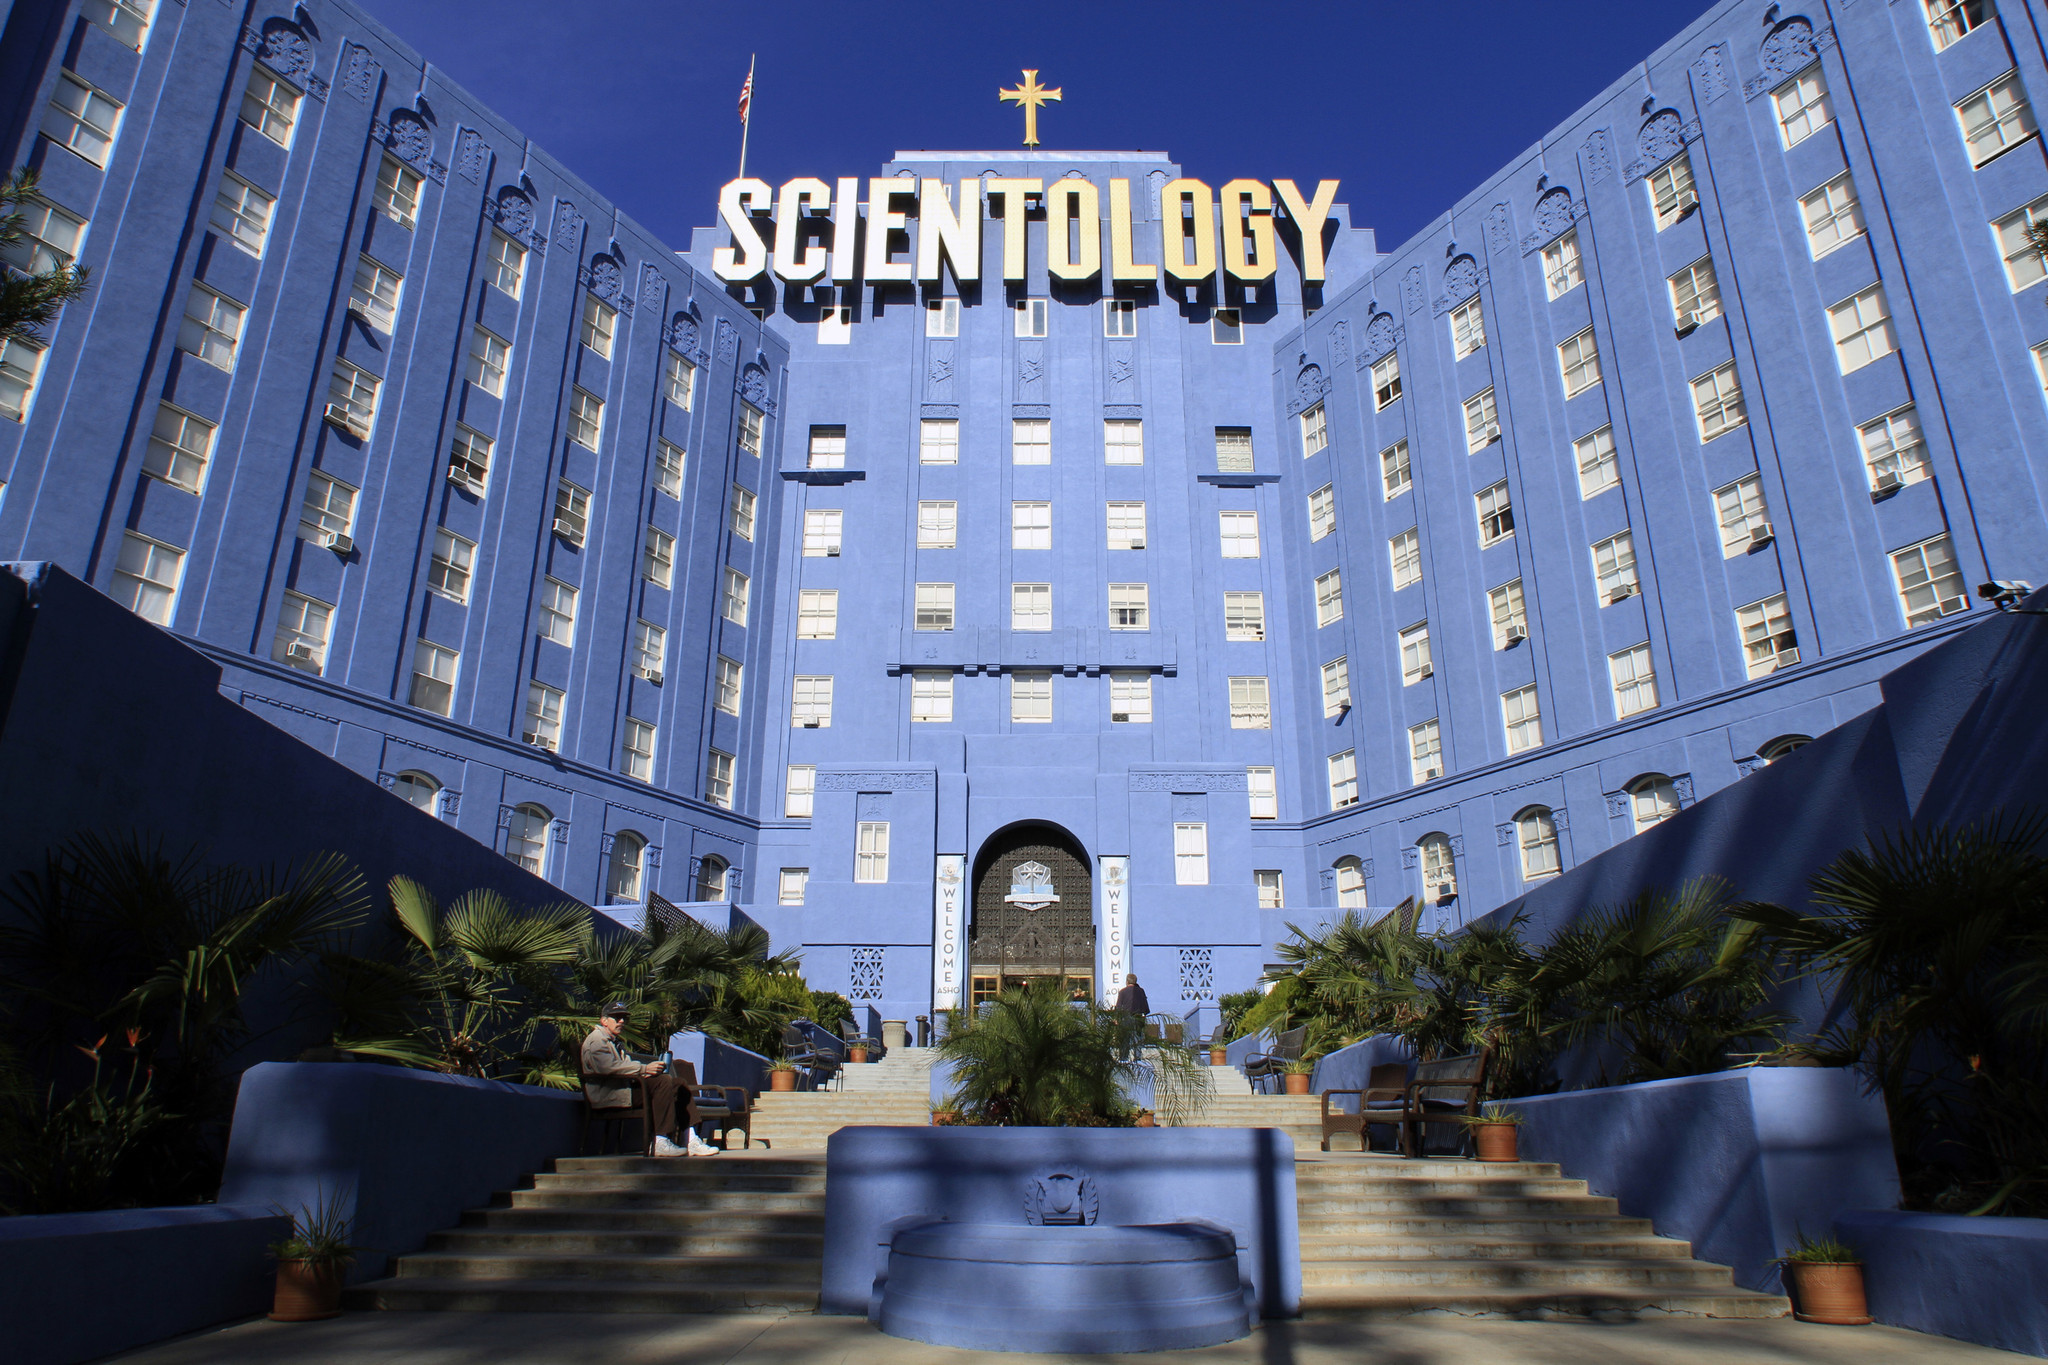 an introduction to the history of scientology Narconon: an introduction narconon is a rehabilitation programme for addicts run on a system devised by scientology's founder, l ron hubbard experts say it is based on junk science and potentially lethal.